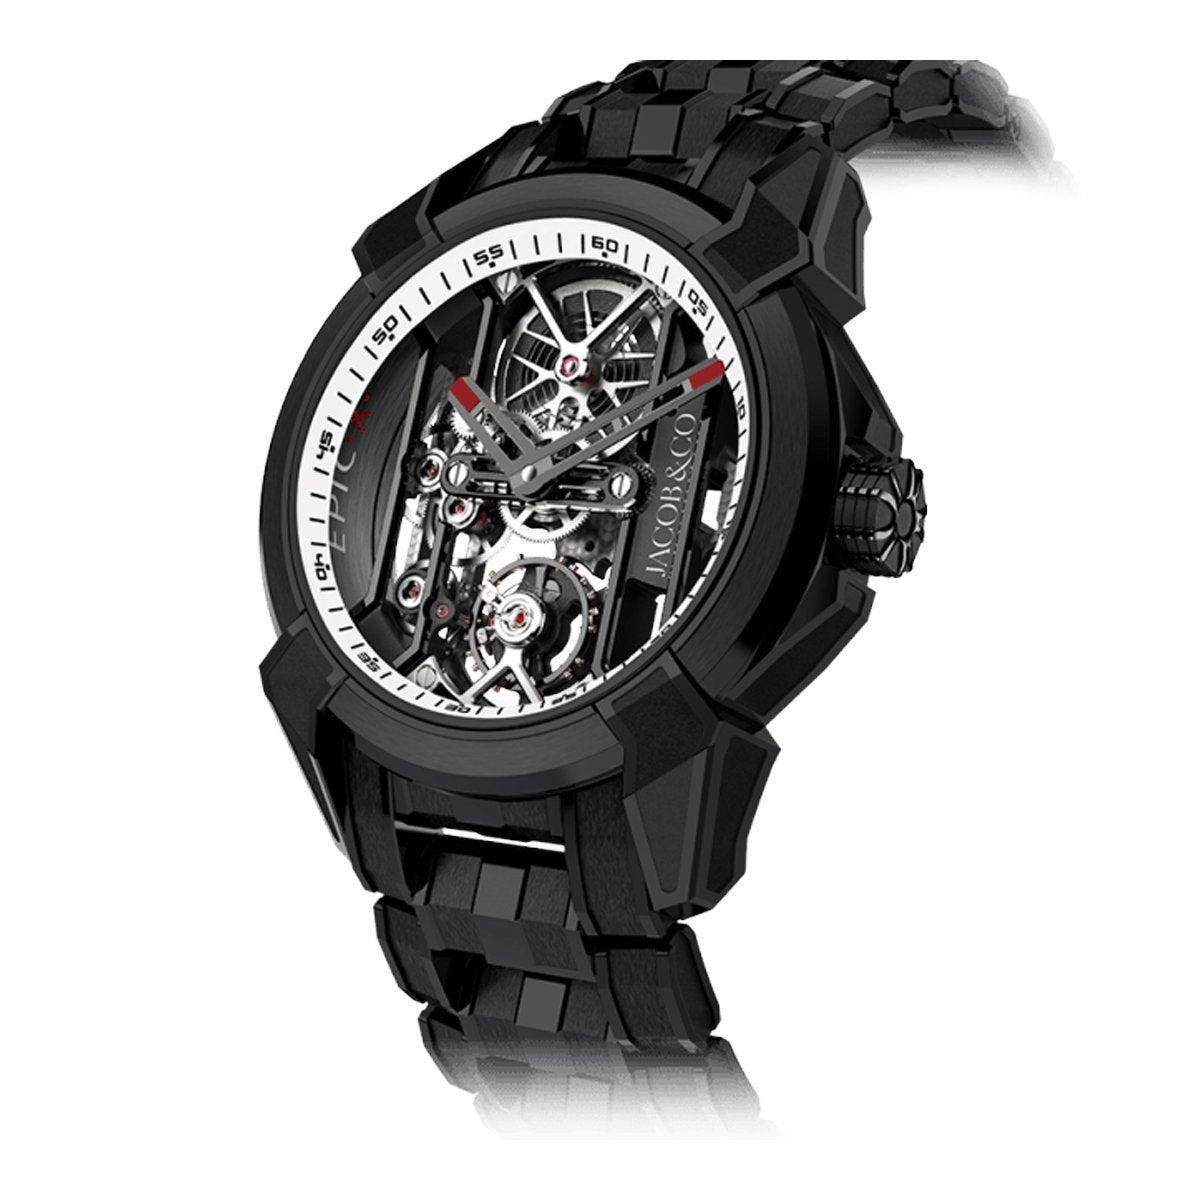 Jacob & Co. Epic X Skeleton Black DLC Bracelet White - Watches & Crystals